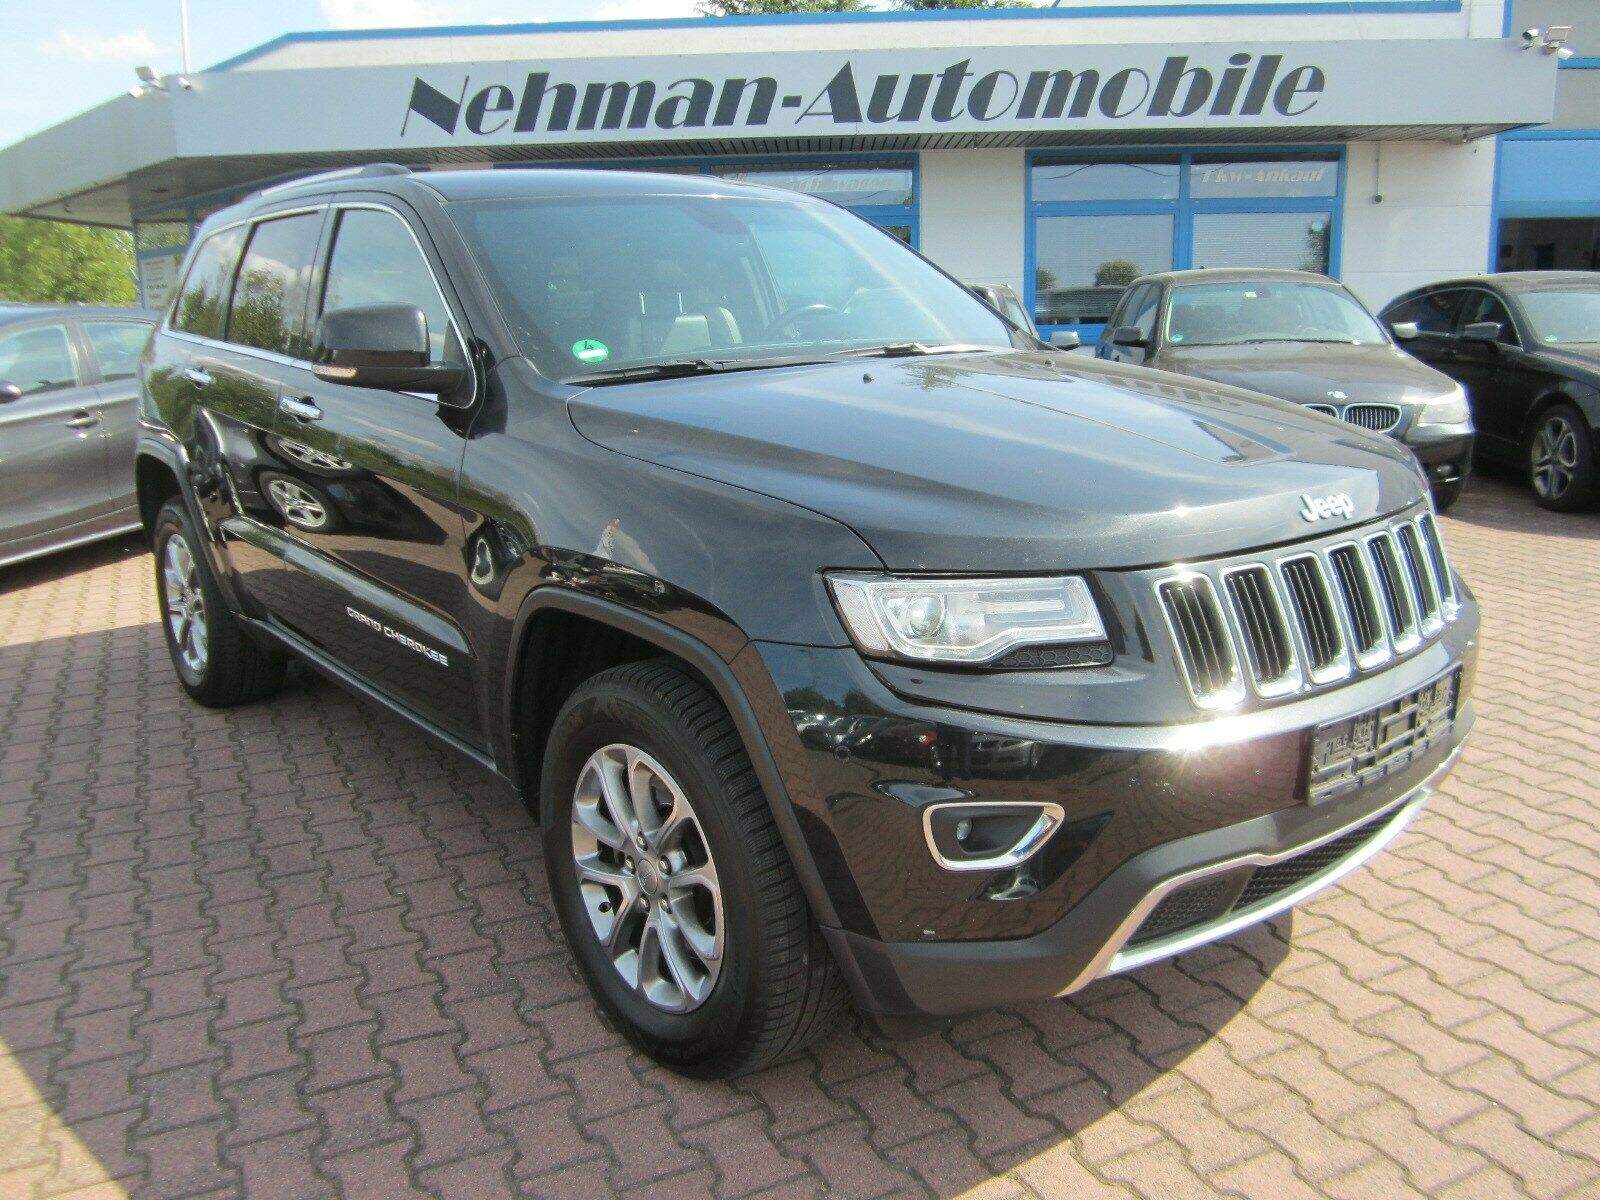 JEEP Grand Cherokee 3.0 CRD Limited Leder-Navi-Ahk